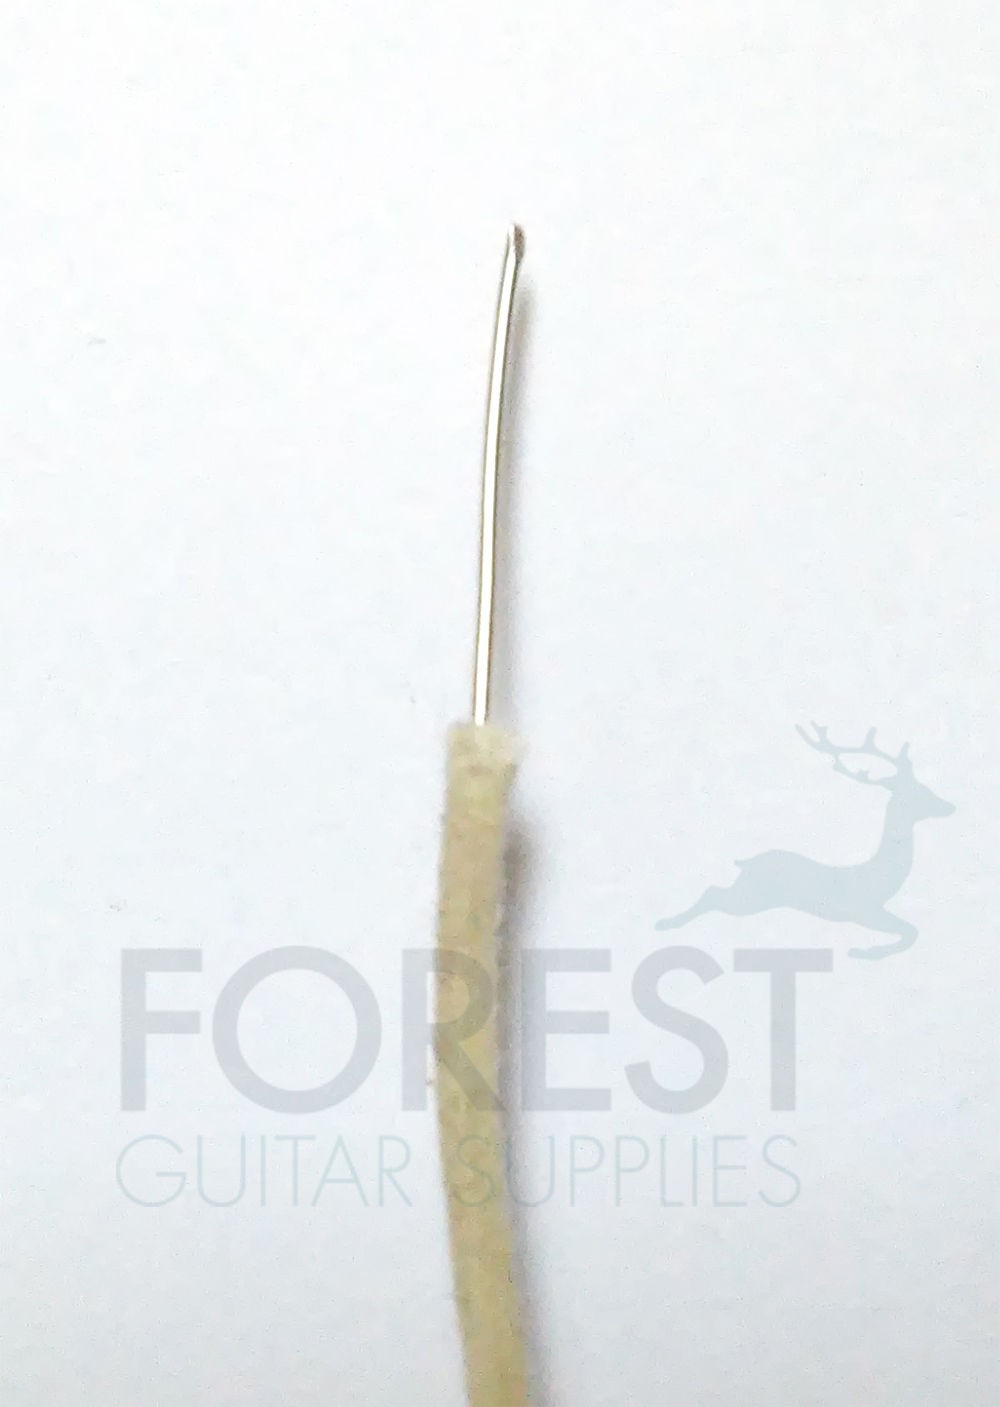 White cloth covered guitar wire AWG22 vintage style, 1 metre (3.28 feet)